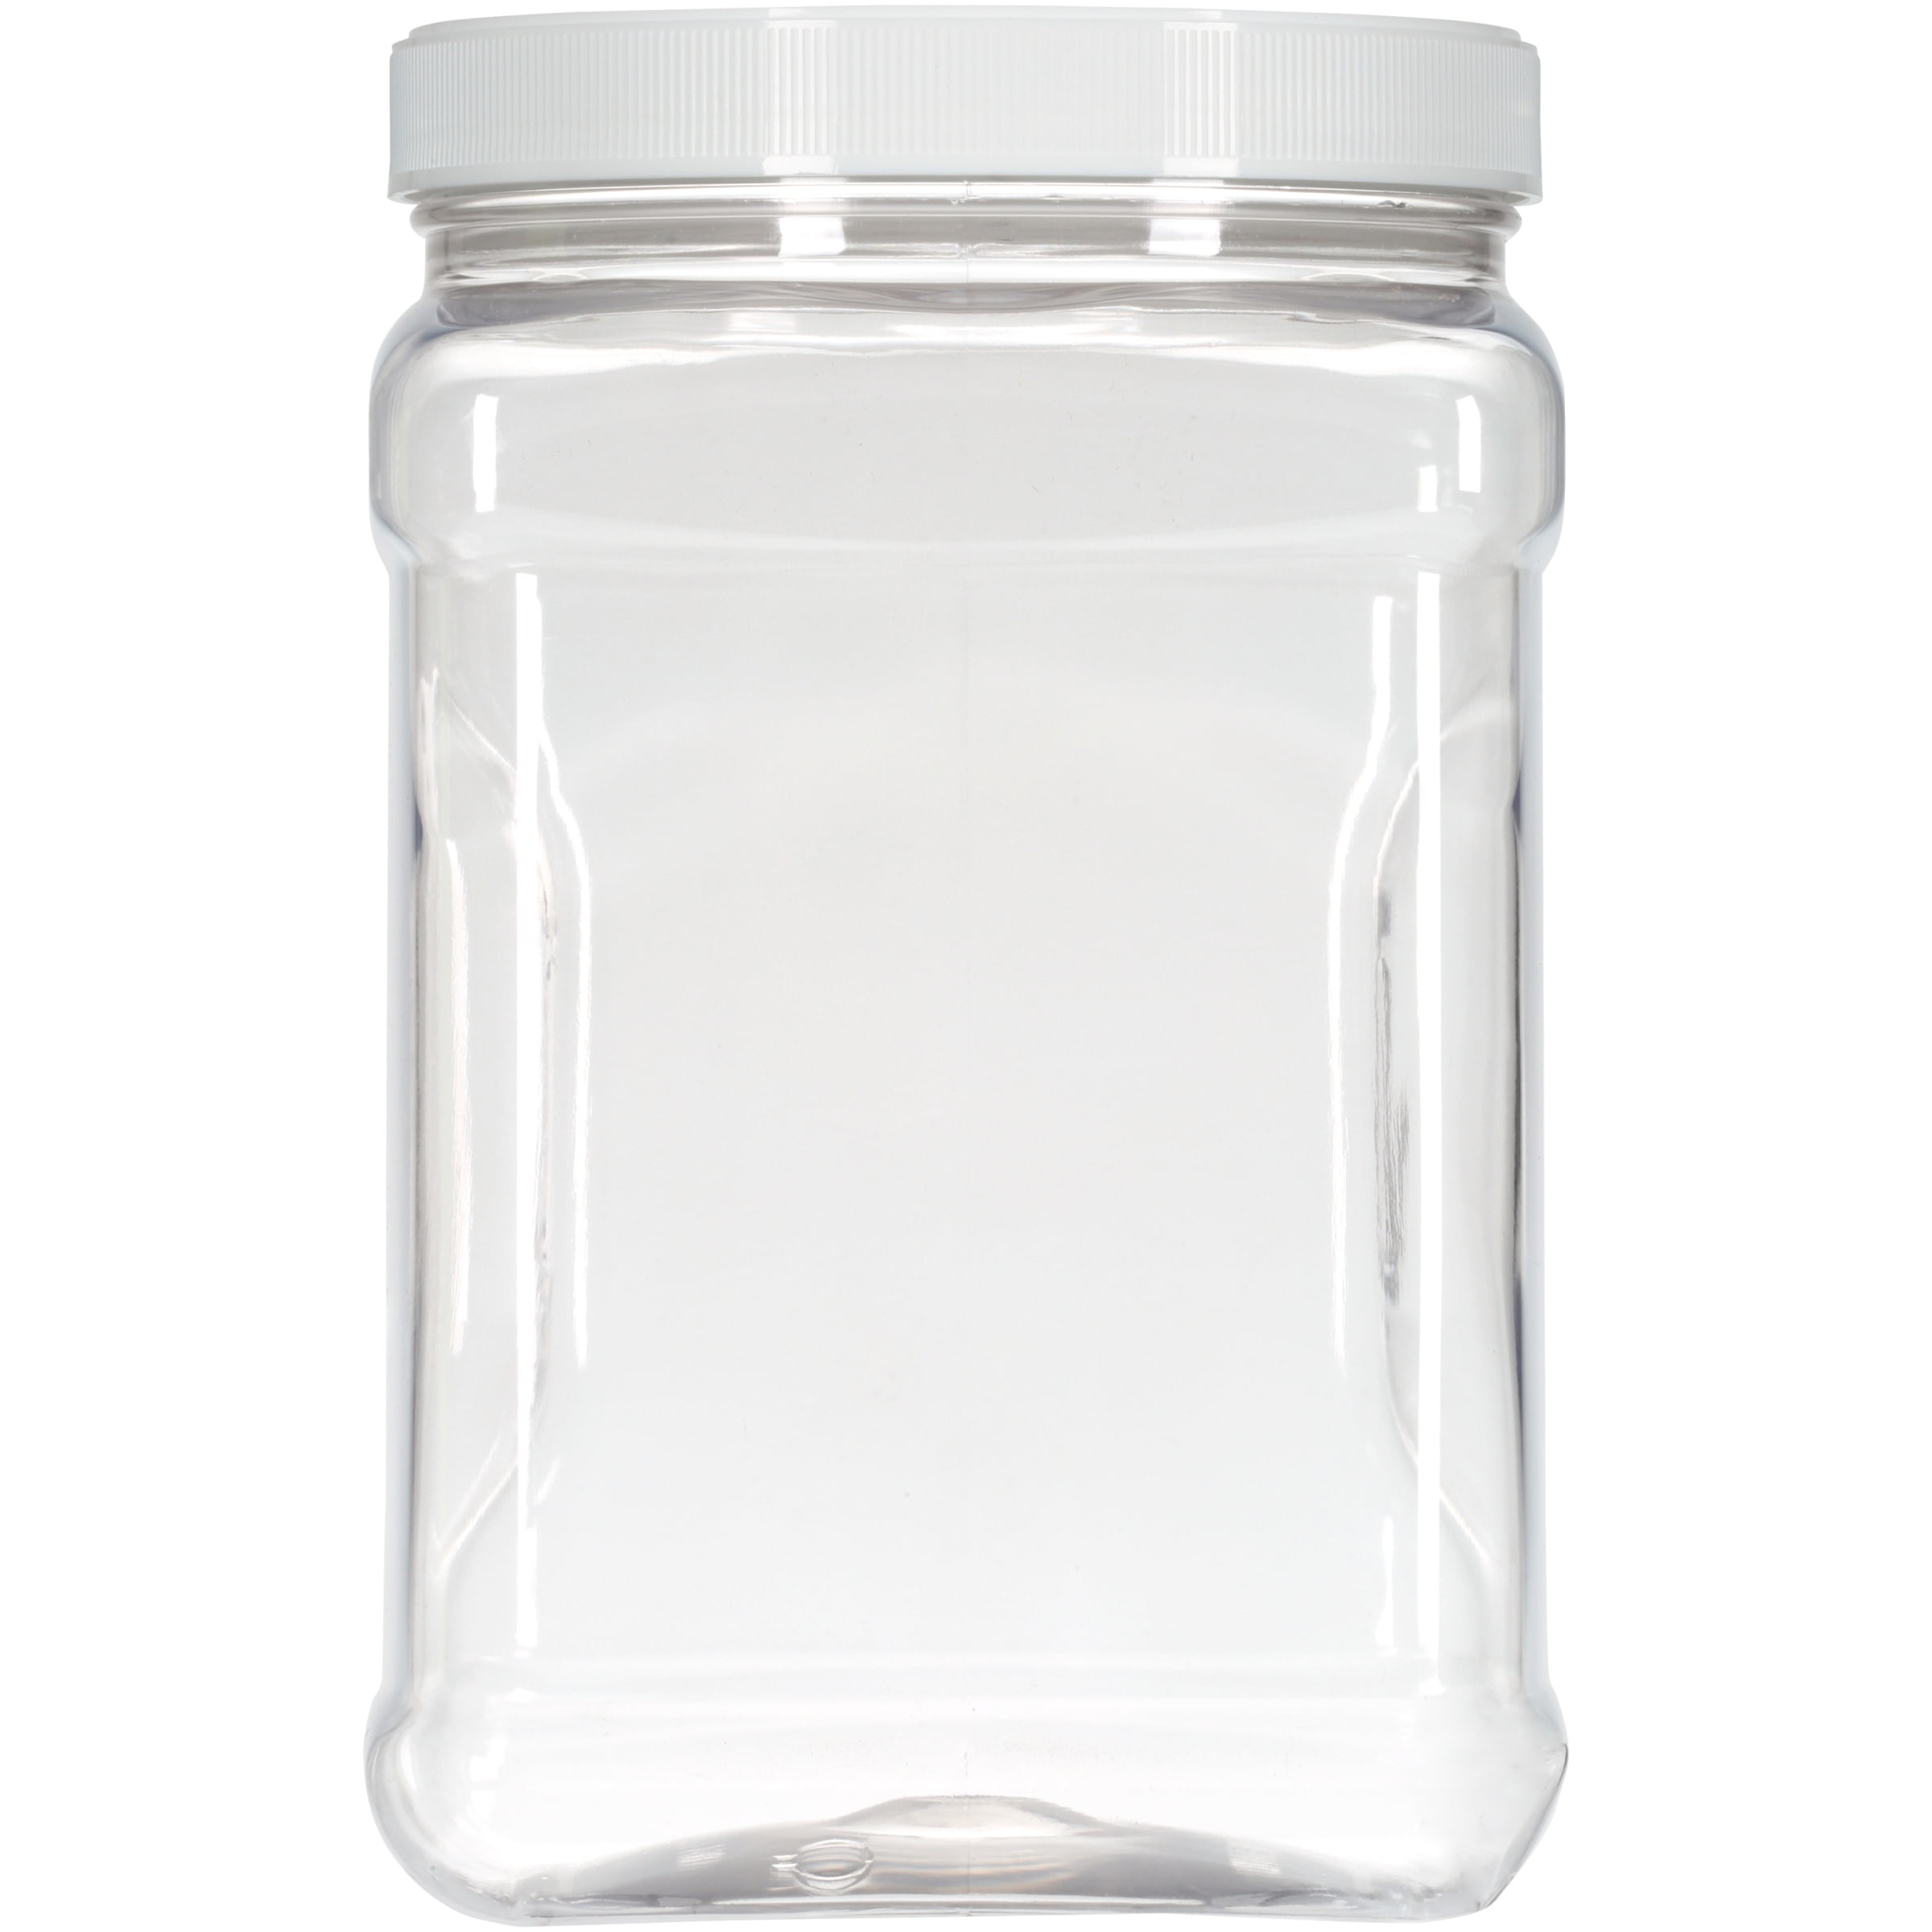 Attrayant Rubbermaid Square Food Storage Canister, 2 Qt., Clear   Walmart.com